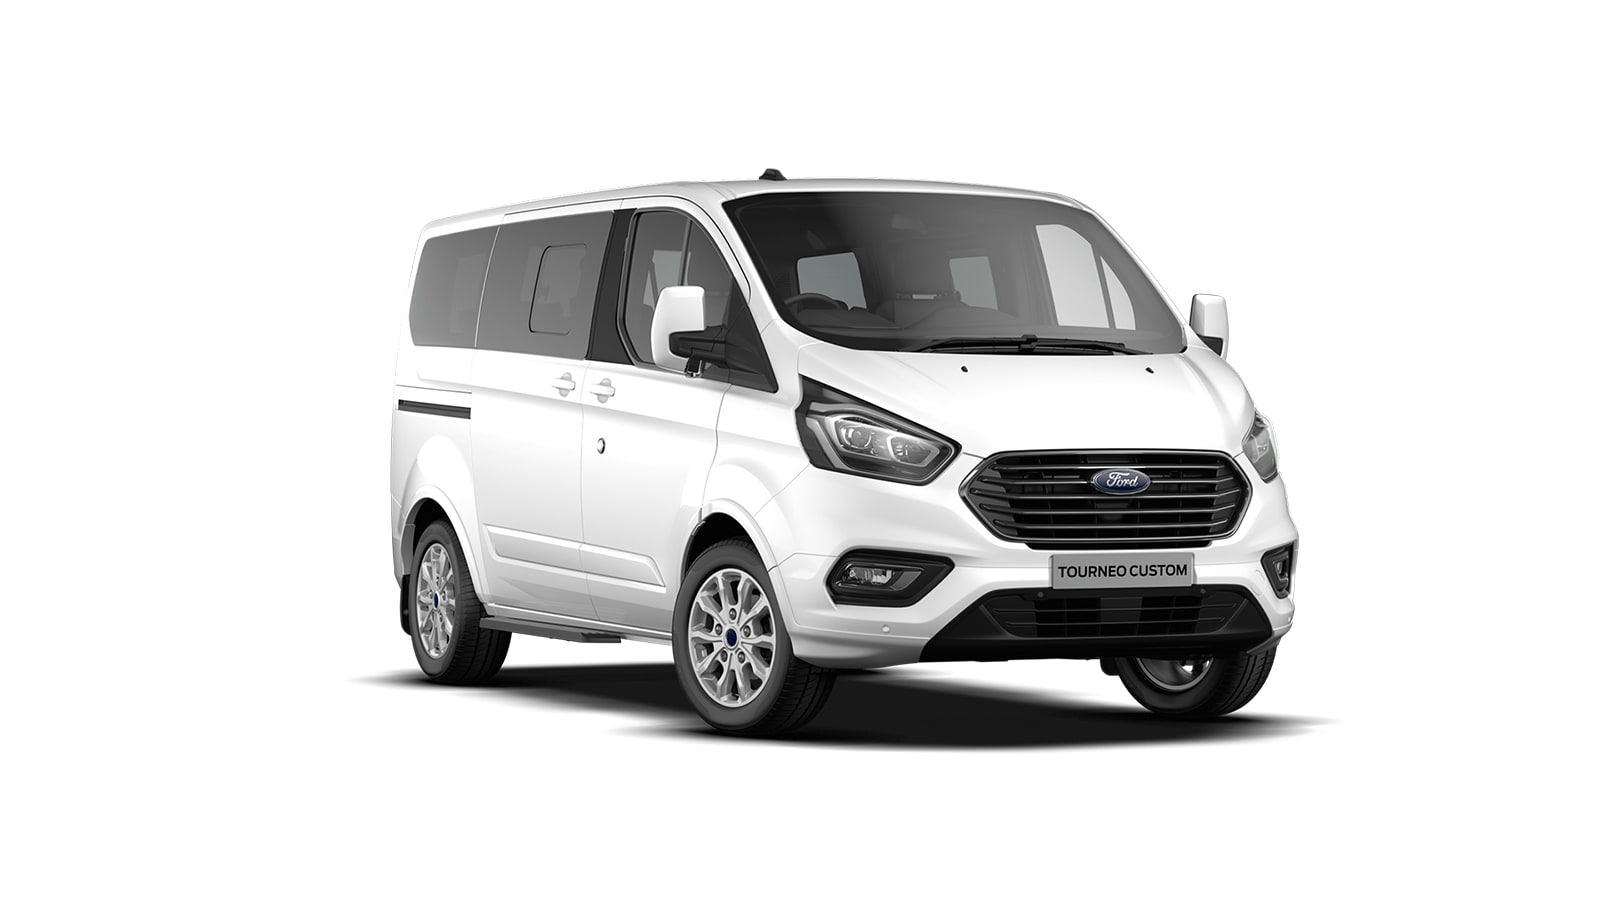 New Ford TOURNEO CUSTOM PLUG-IN HYBRID at Pentre Motors